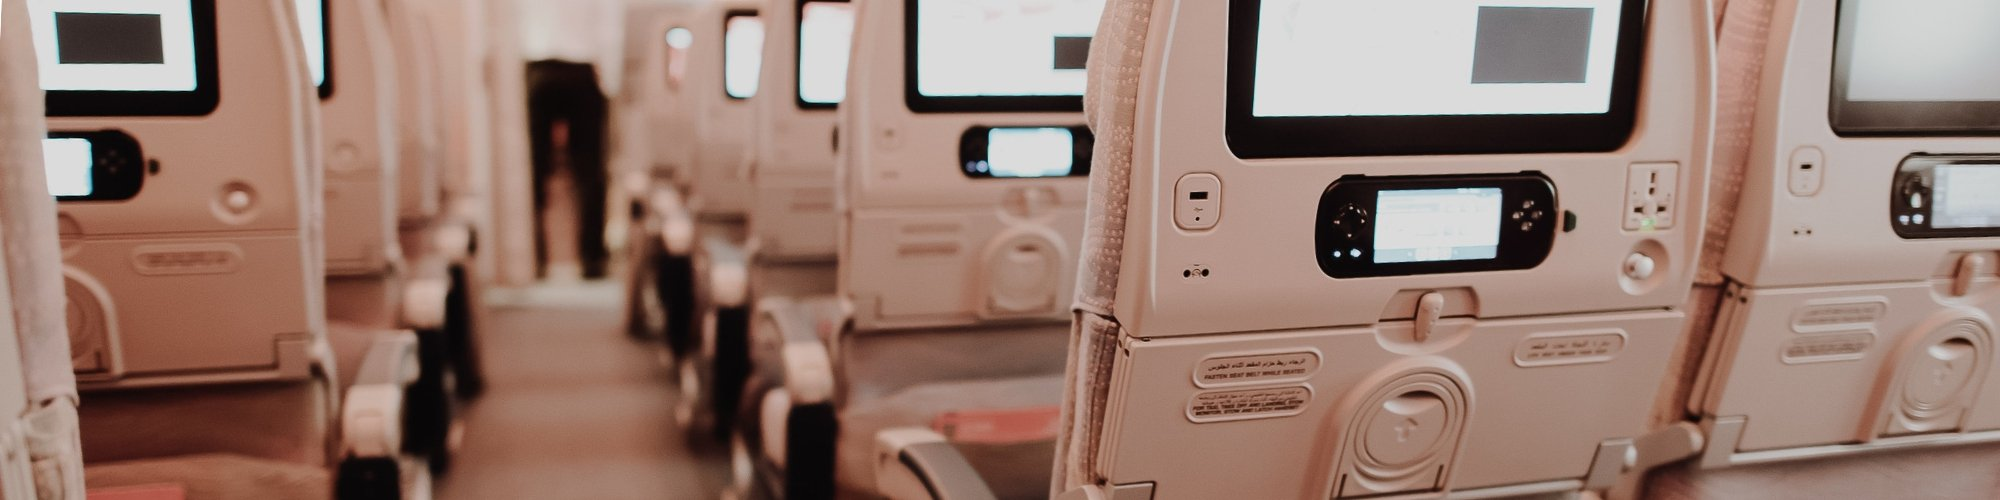 6 Cringe-Worthy Things About Air Travel You Probably Did Not Know